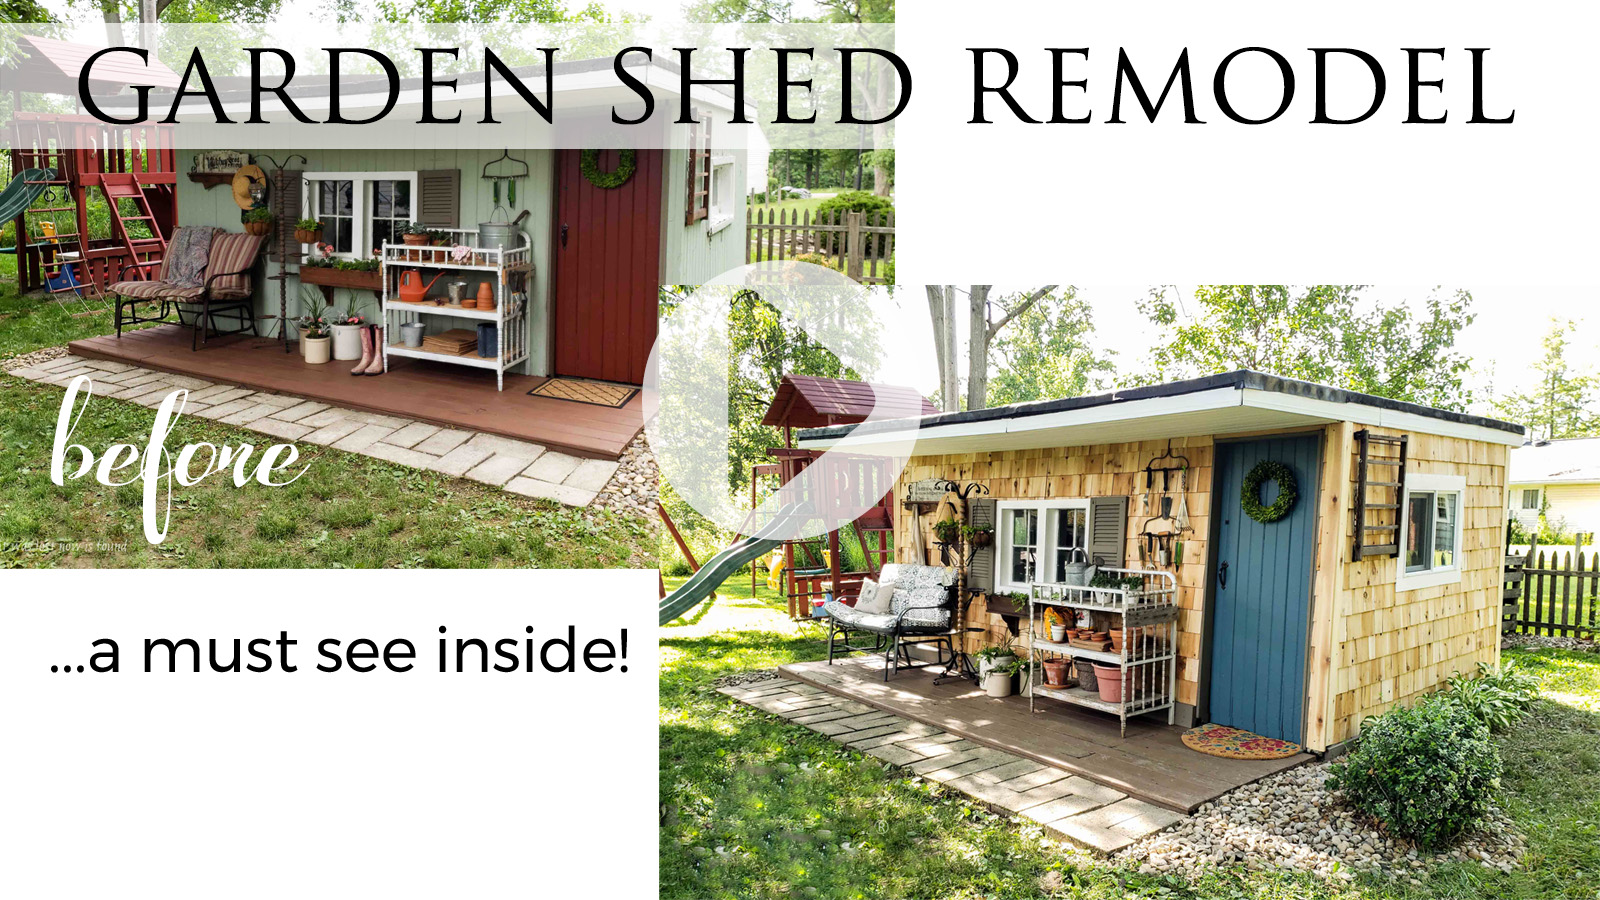 DIY Garden Shed Reveal Video Tour by Larissa of Prodigal Pieces | prodigalpieces.com